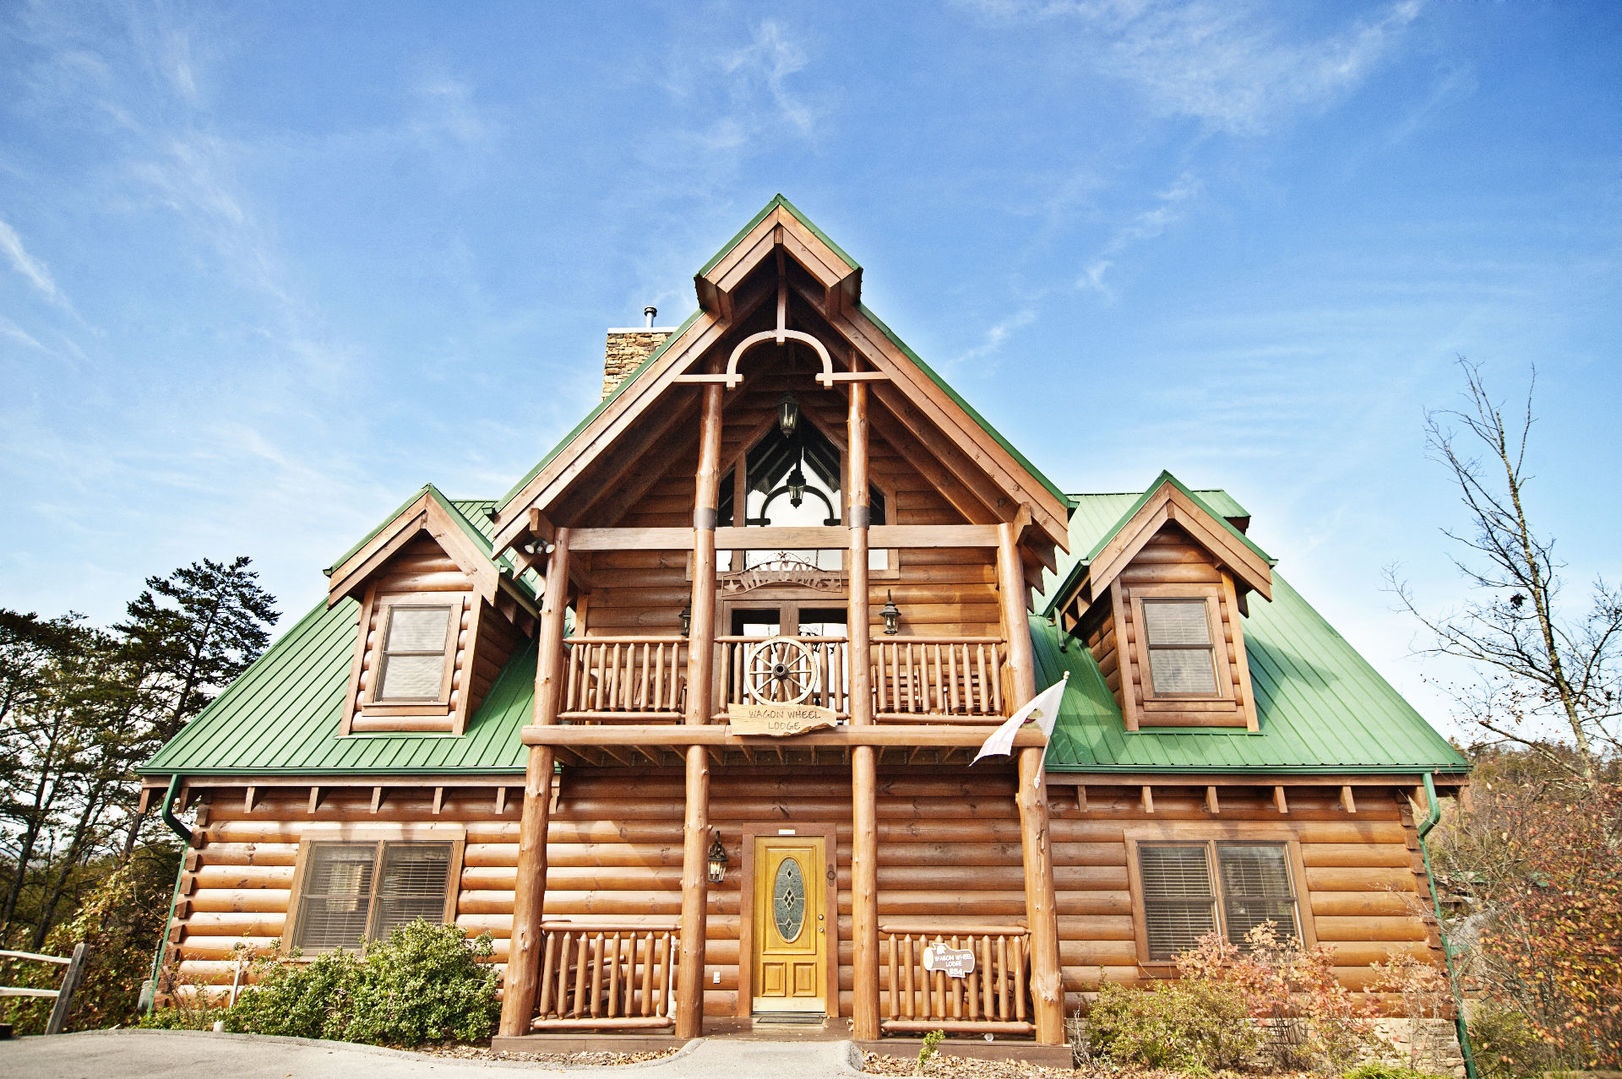 6 Reasons to Stay in Our Pigeon Forge Cabins for Your Spring